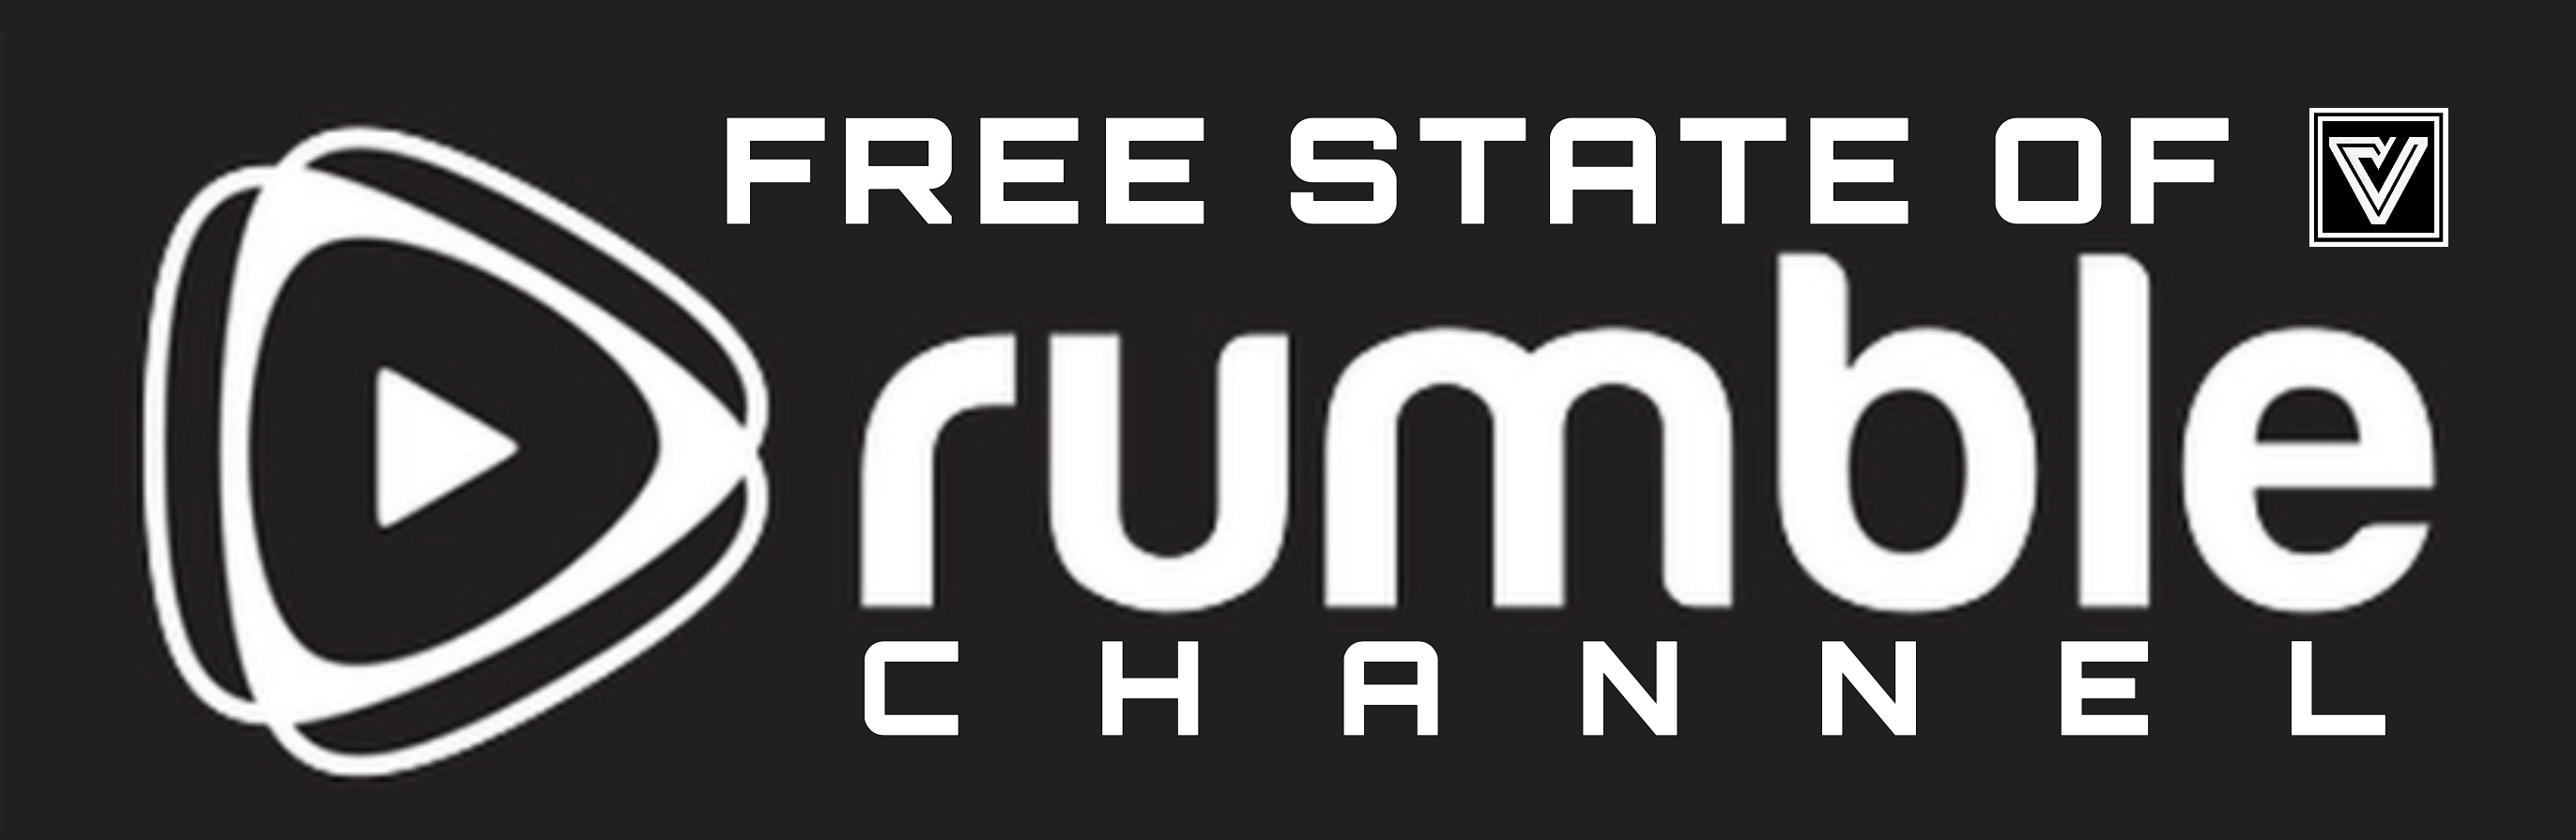 Free State of V Rumble Channel